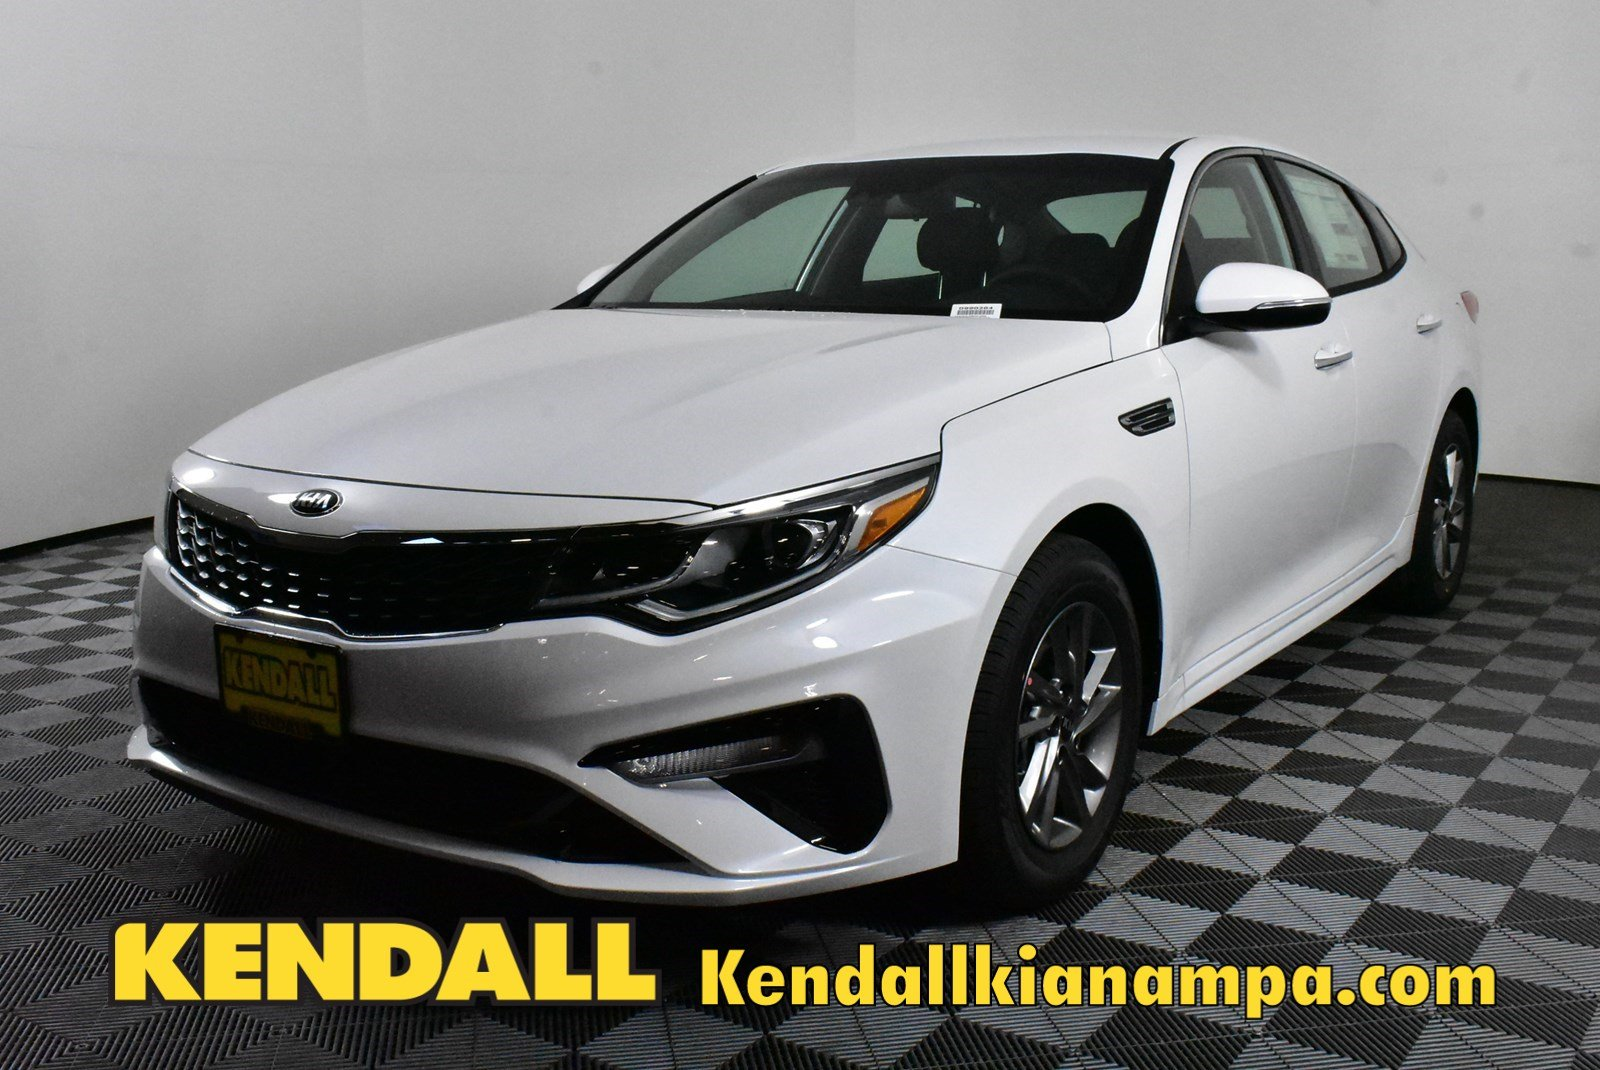 New 2019 Kia Optima Lx In Nampa D990264 Kendall At The Idaho Center Auto Mall